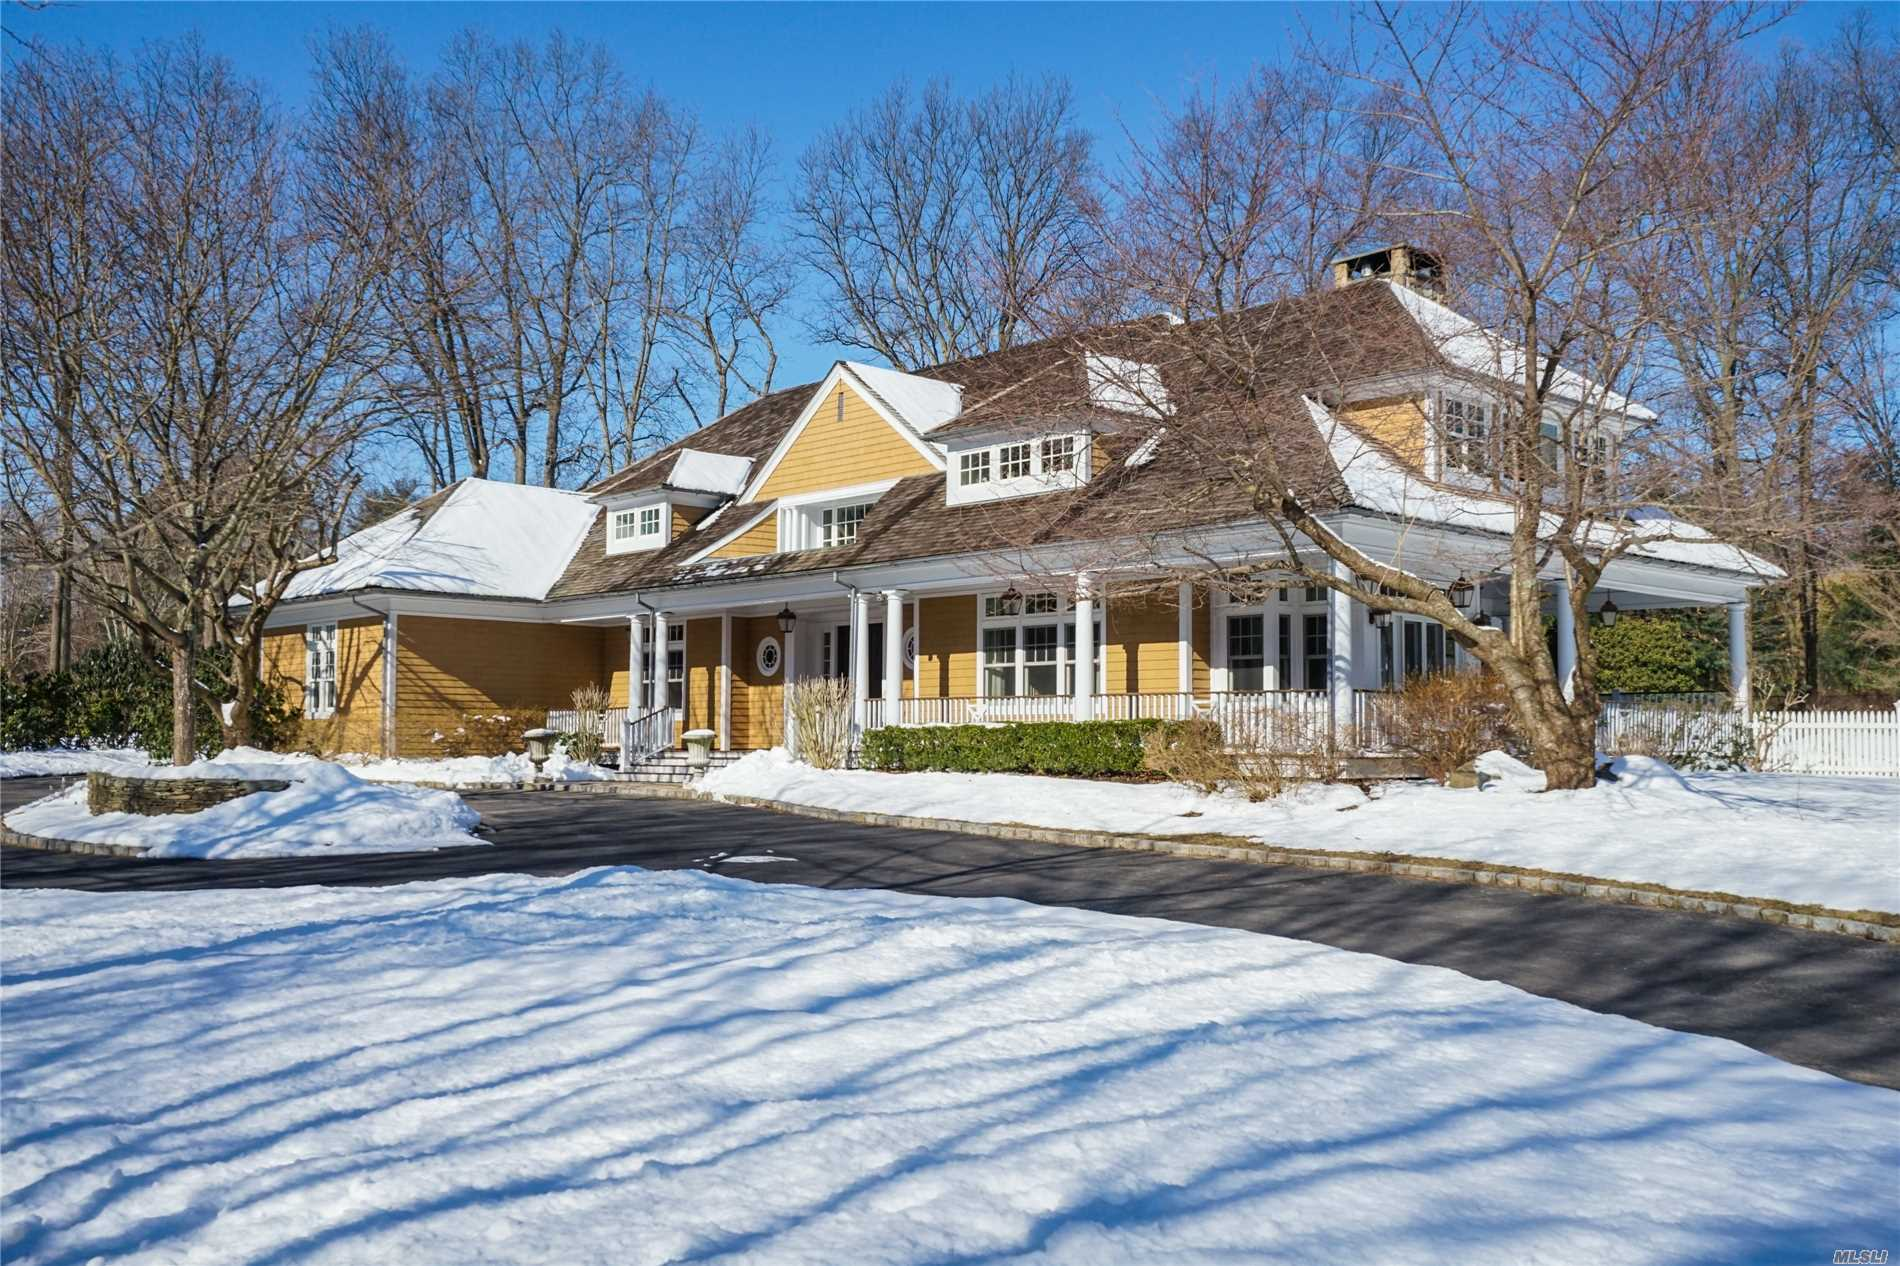 Hampton Home And Lifestyle 1 Hour From Nyc In Aspirational Beach Community On 2 Flat Professionally Landscaped Acres With Heated Pool, Spa, Poolhouse, Lighted Tennis Court.2013 Kitchen W Radiant Heat And 3 2019 Baths. 10' Ceilings Throughout. Minutes To Train, Town And Beach/Mooring.